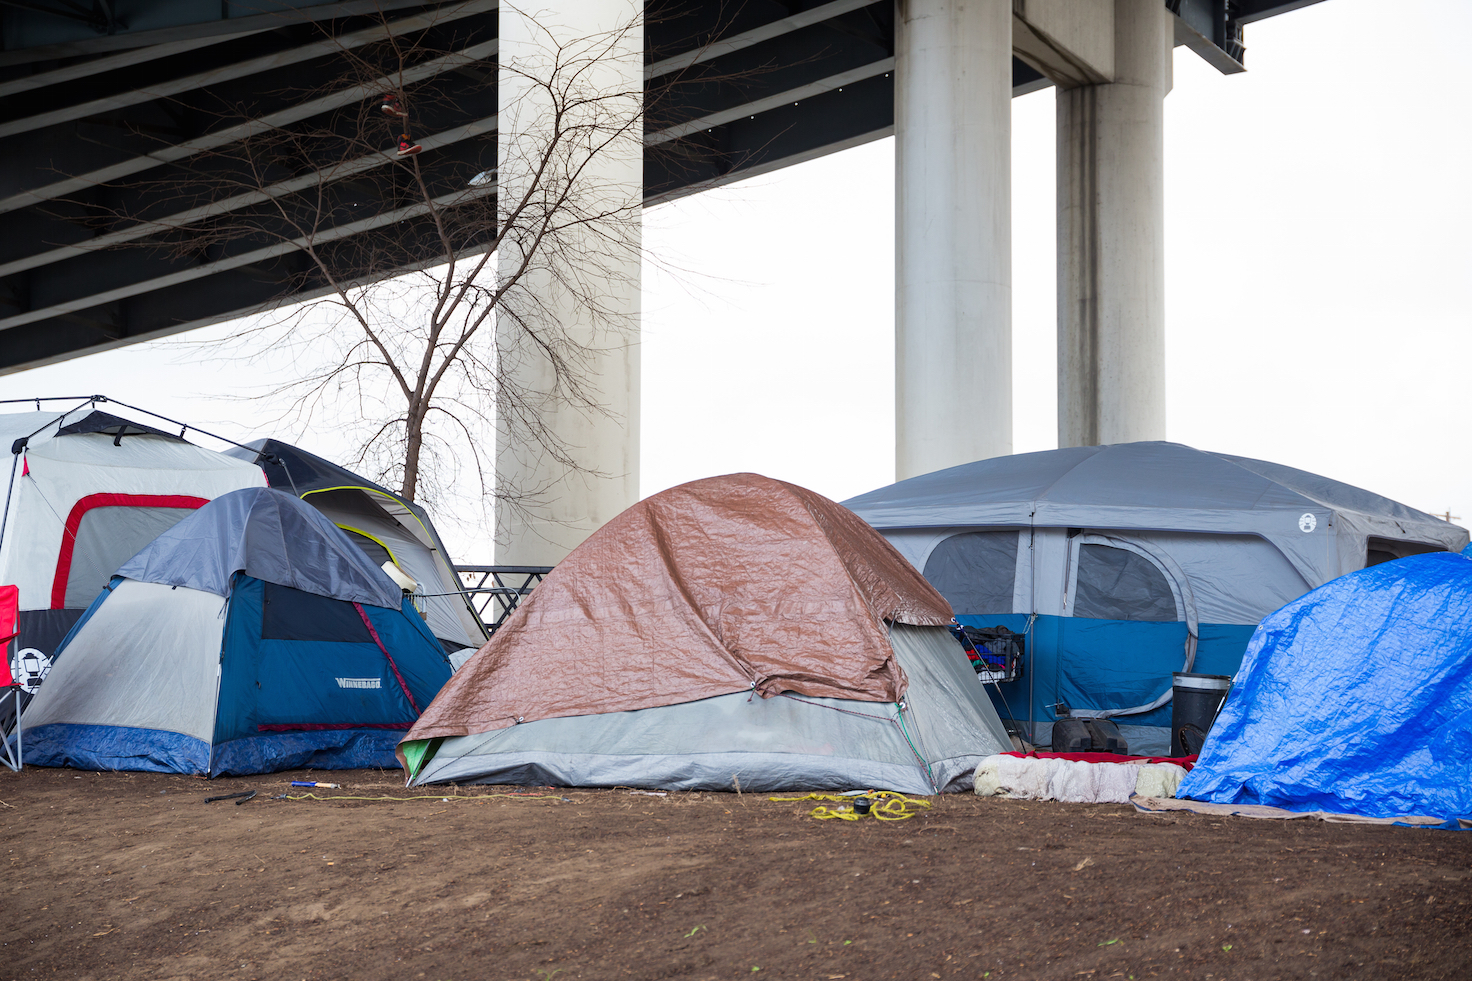 A homeless encampment in portland. photo:  Joshua Rainey Photography/shutterstock